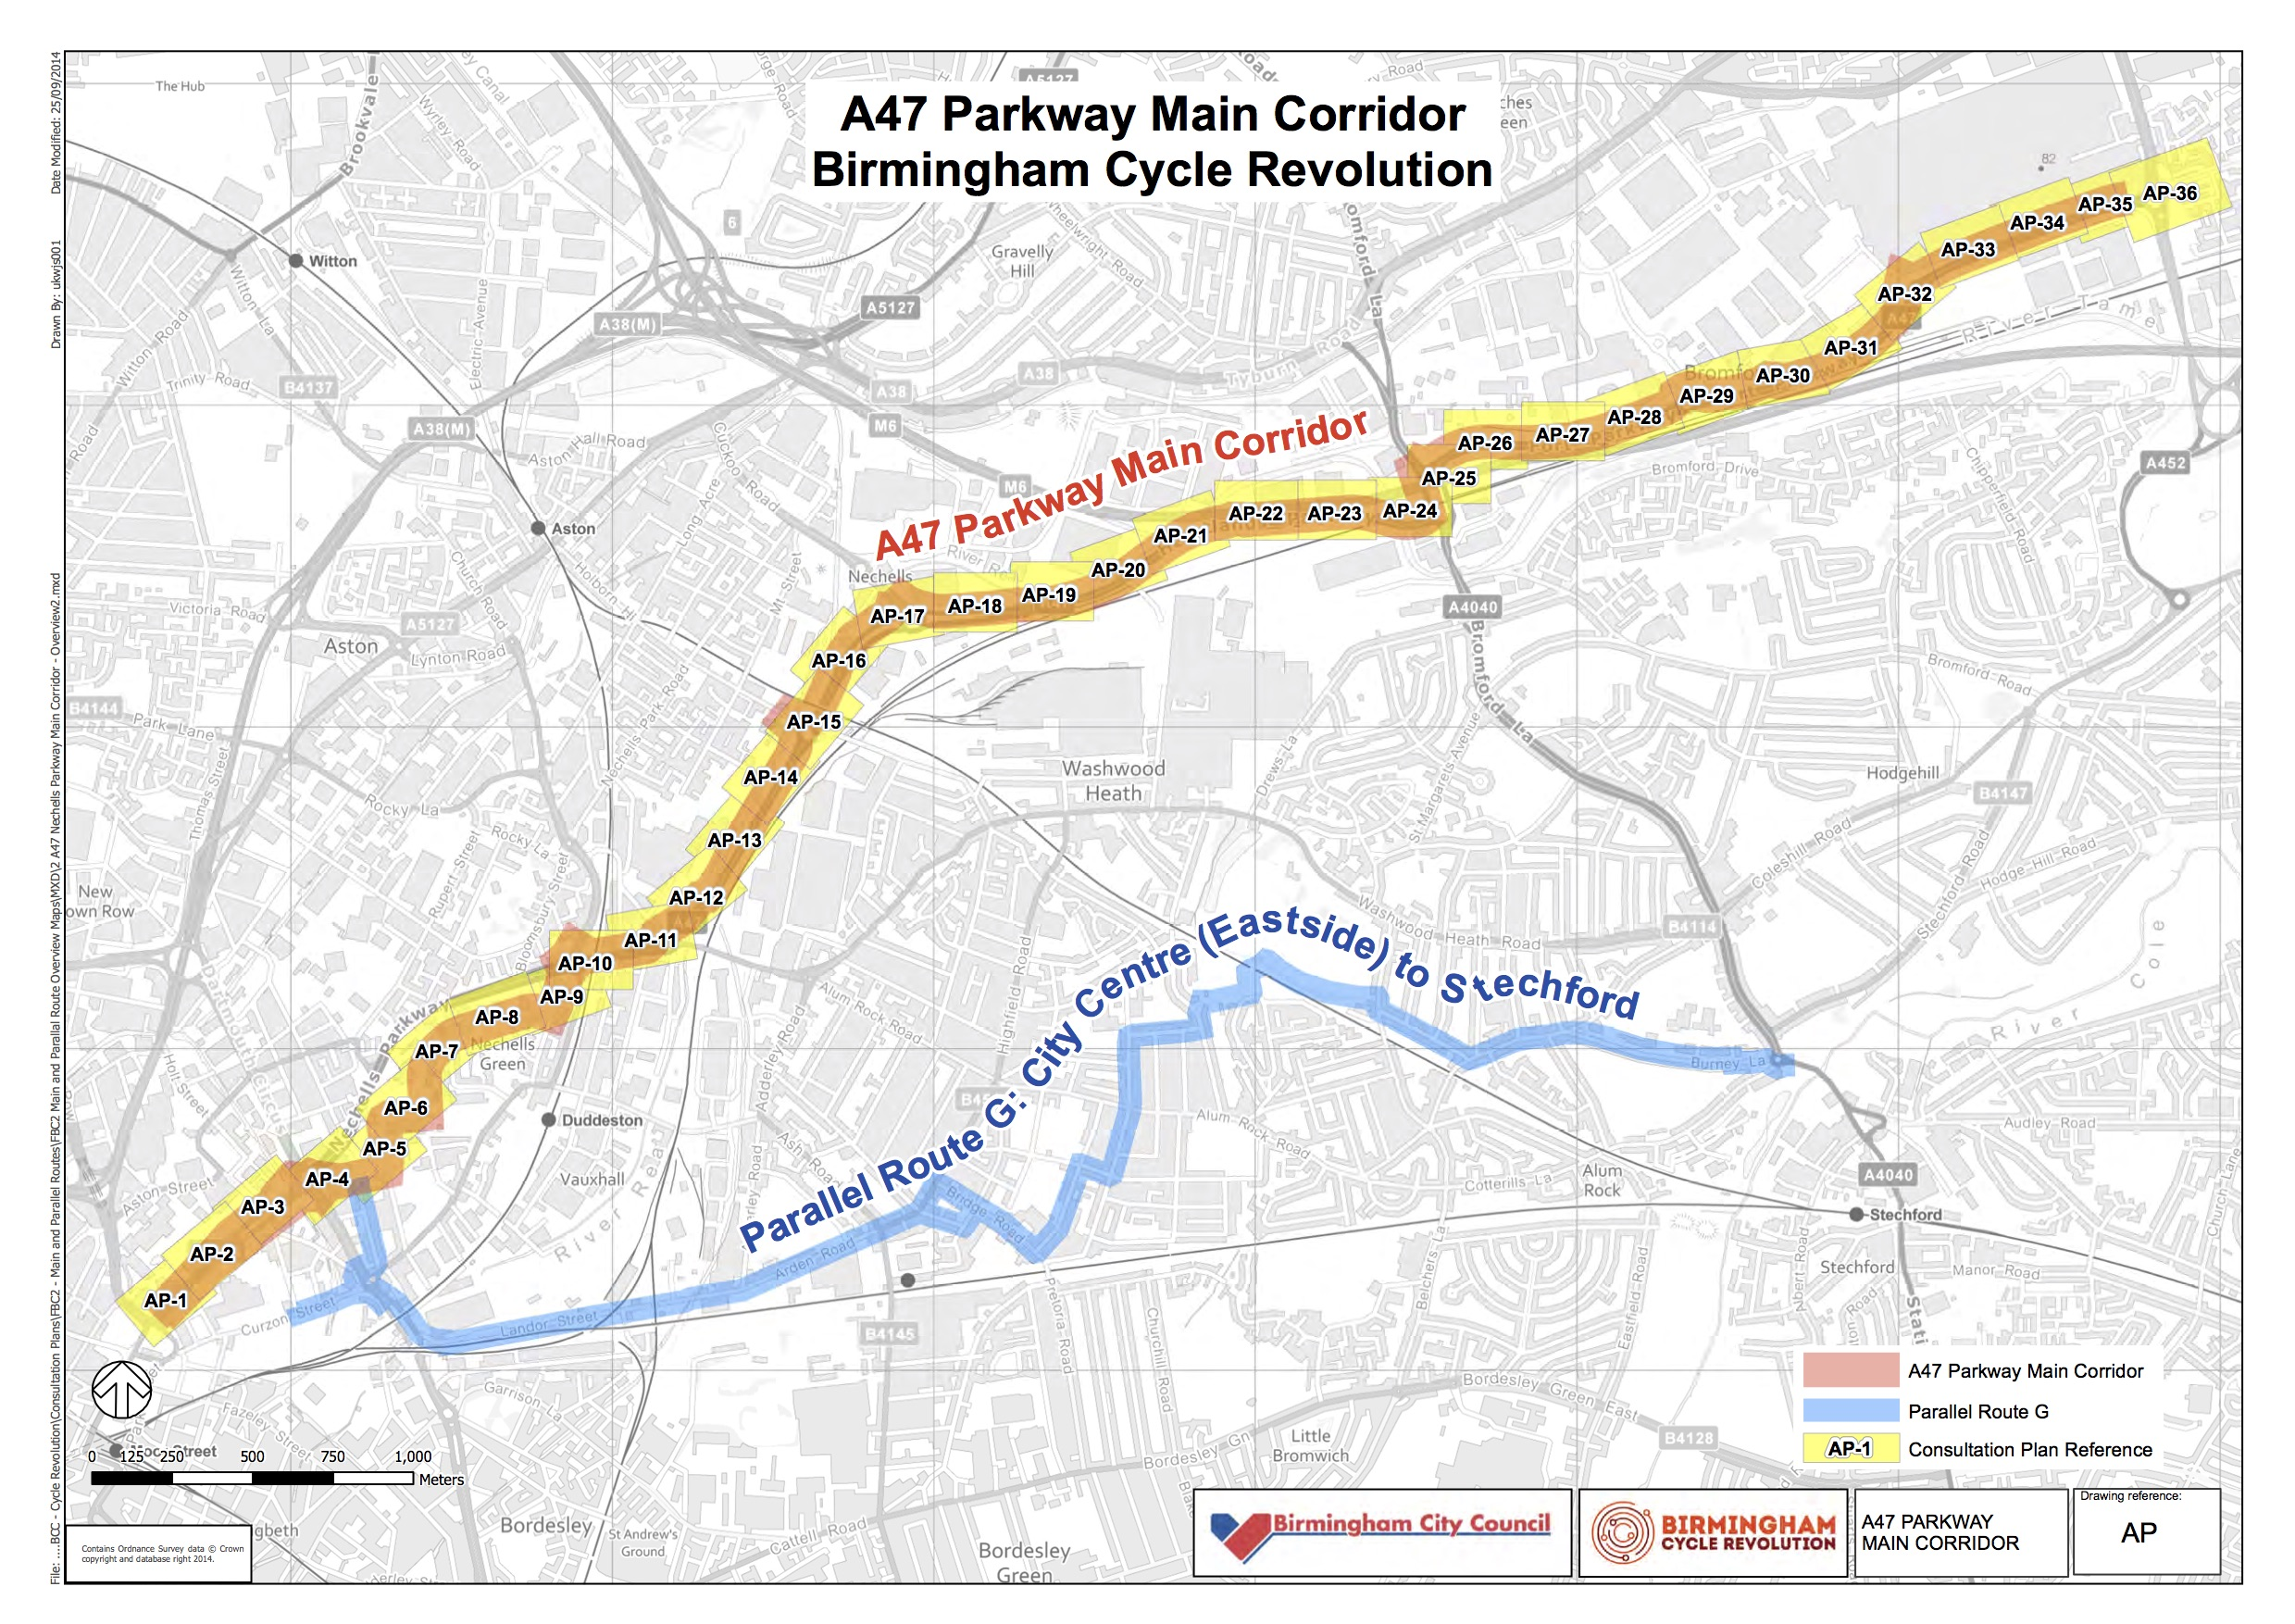 Overview of the A47 Parkway route